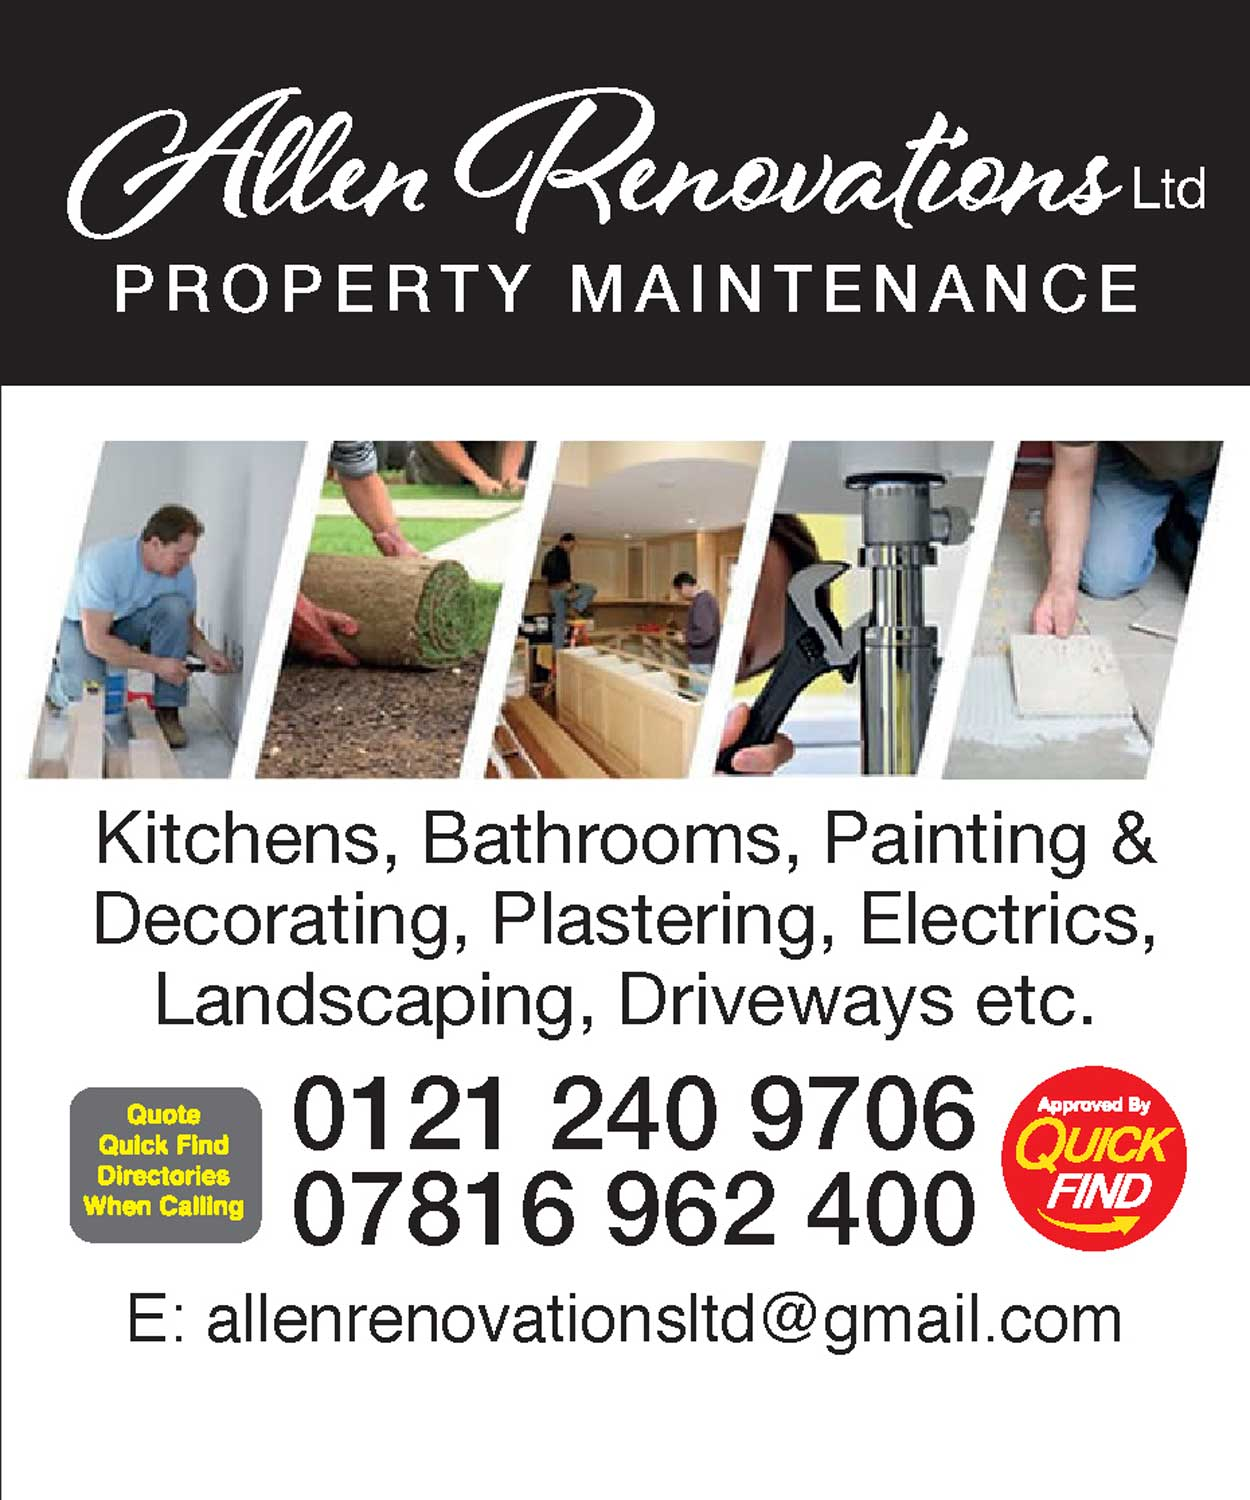 Allen Renovations Property Maintenance